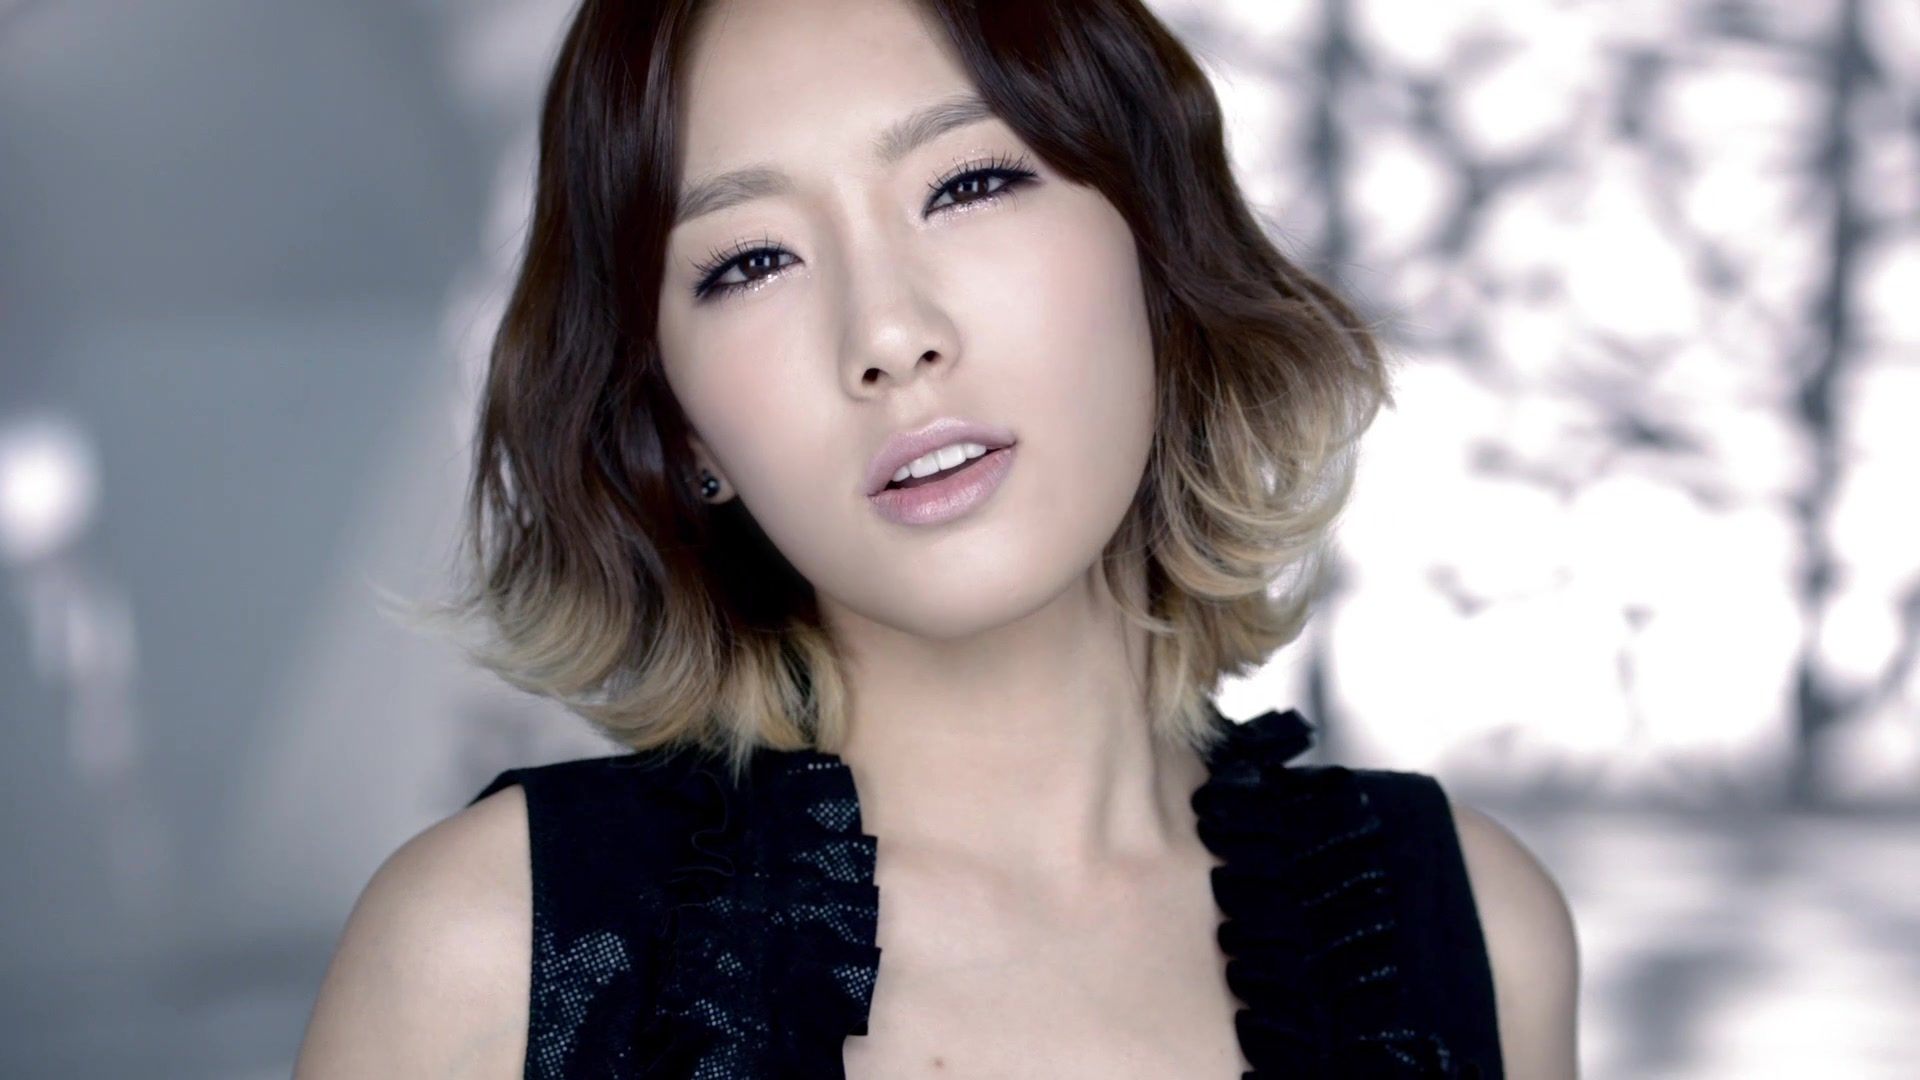 Taeyeon - The Boys mv - S♥NEISM Image (27080626) - Fanpop Taeyeon The Boys